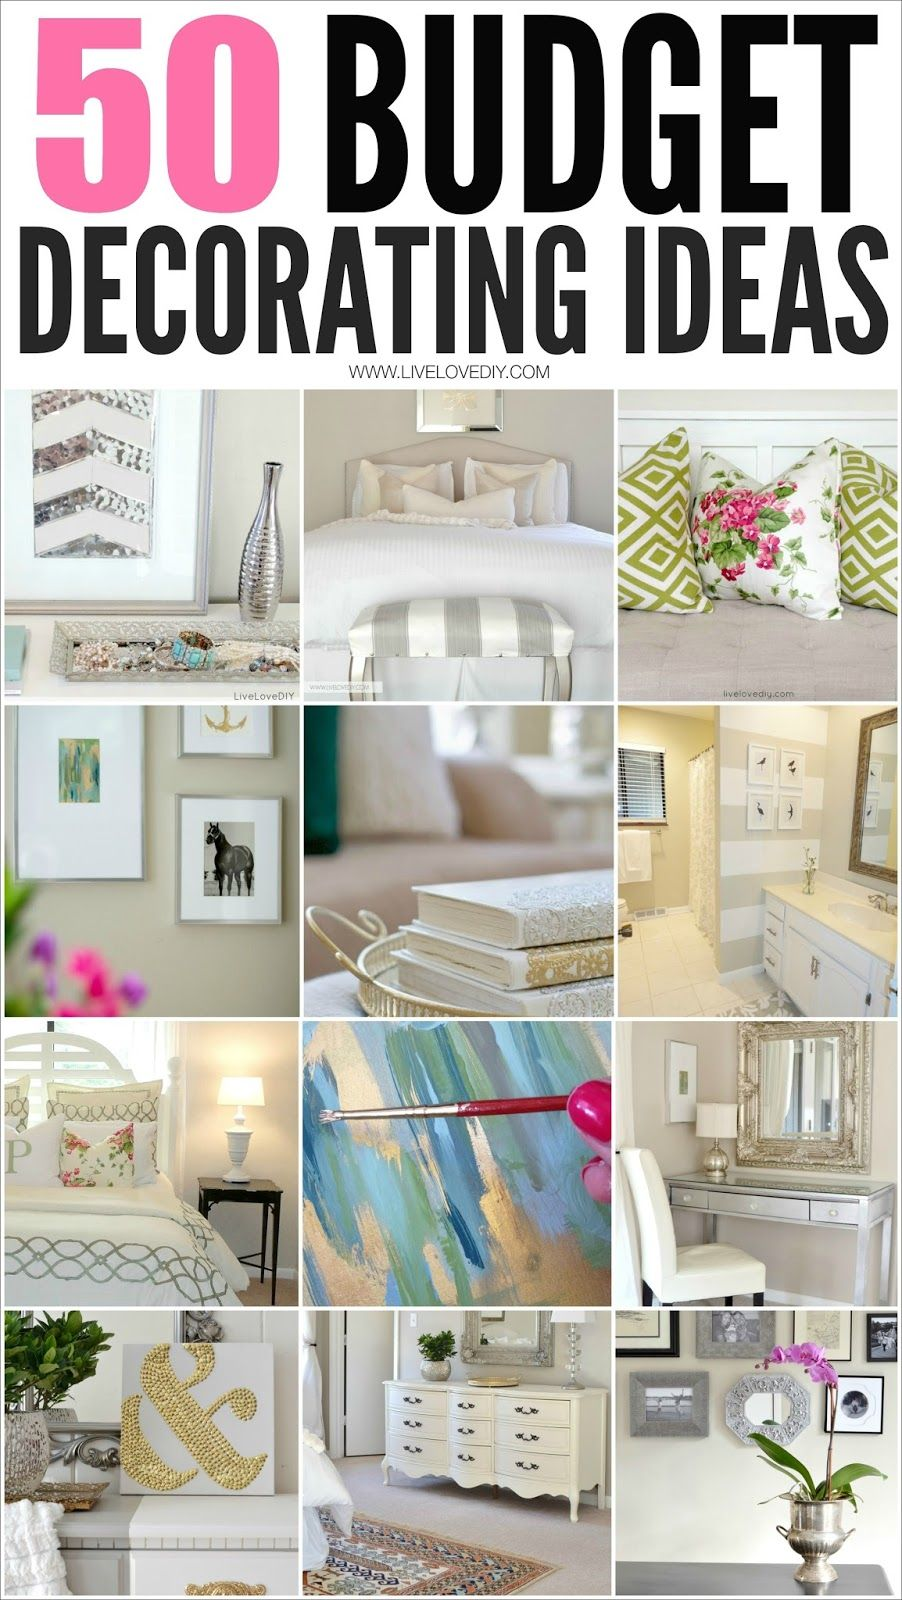 50 Budget Decorating Tips You Should Know! (LiveLoveDIY ...